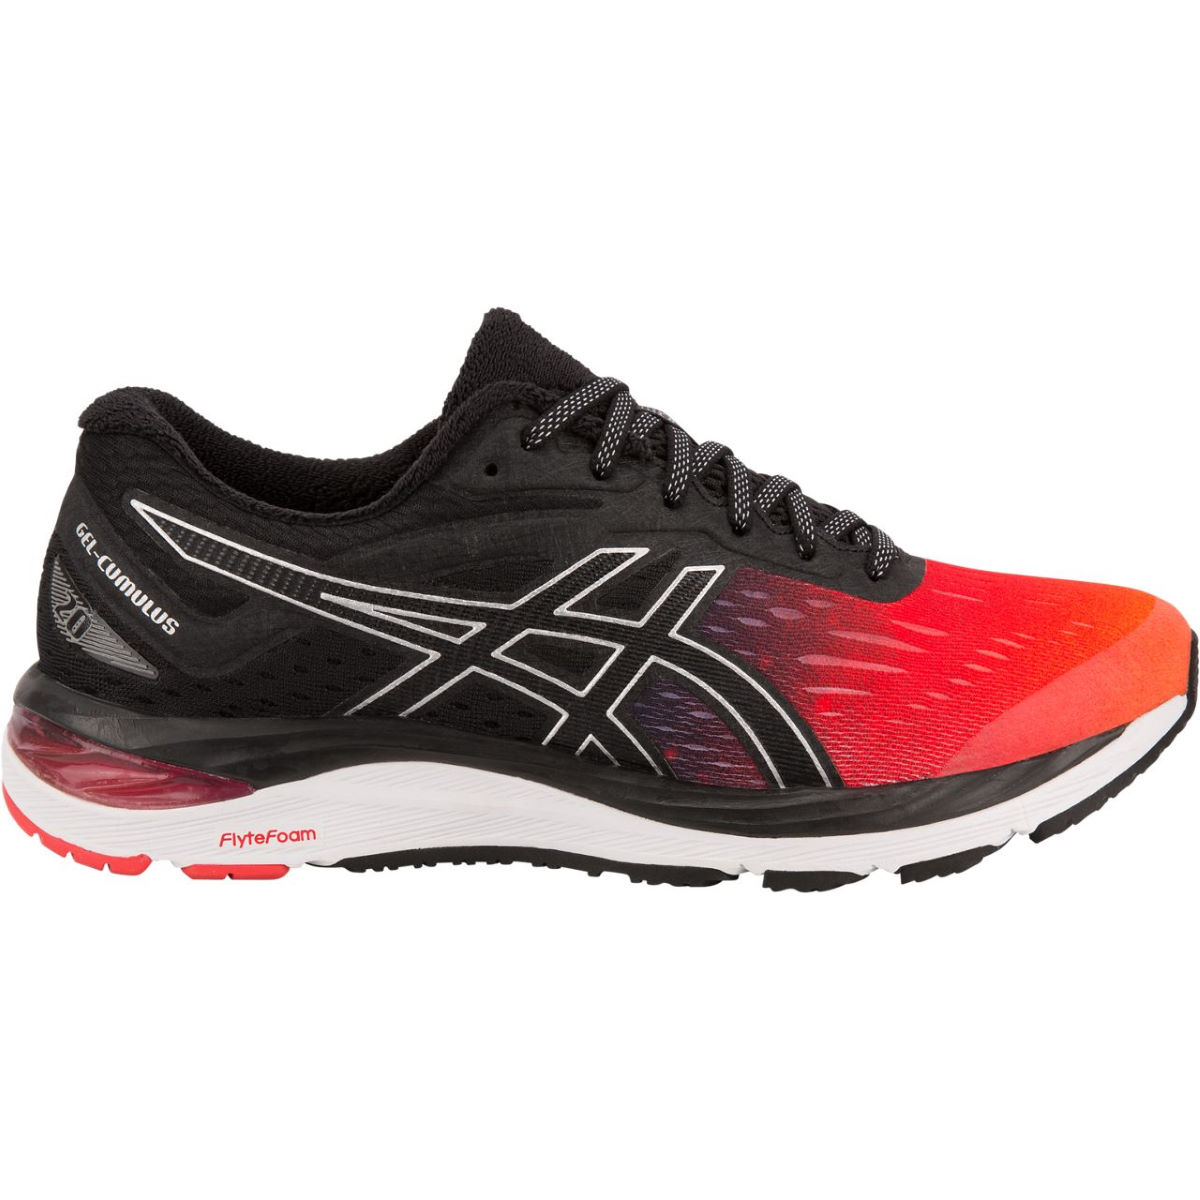 Asics Gel-Cumulus 20 SP Shoes - Zapatillas de running